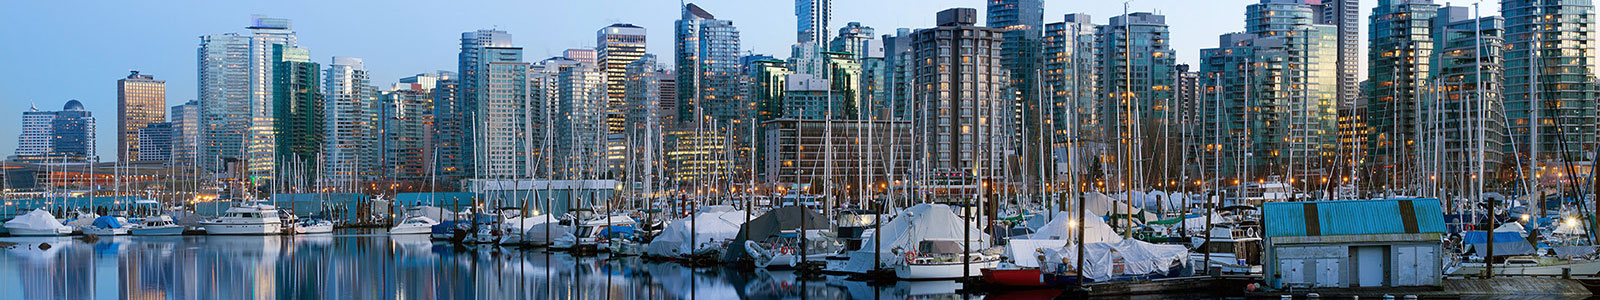 Coal Harbour Marina, Investing in Vancouver real estate